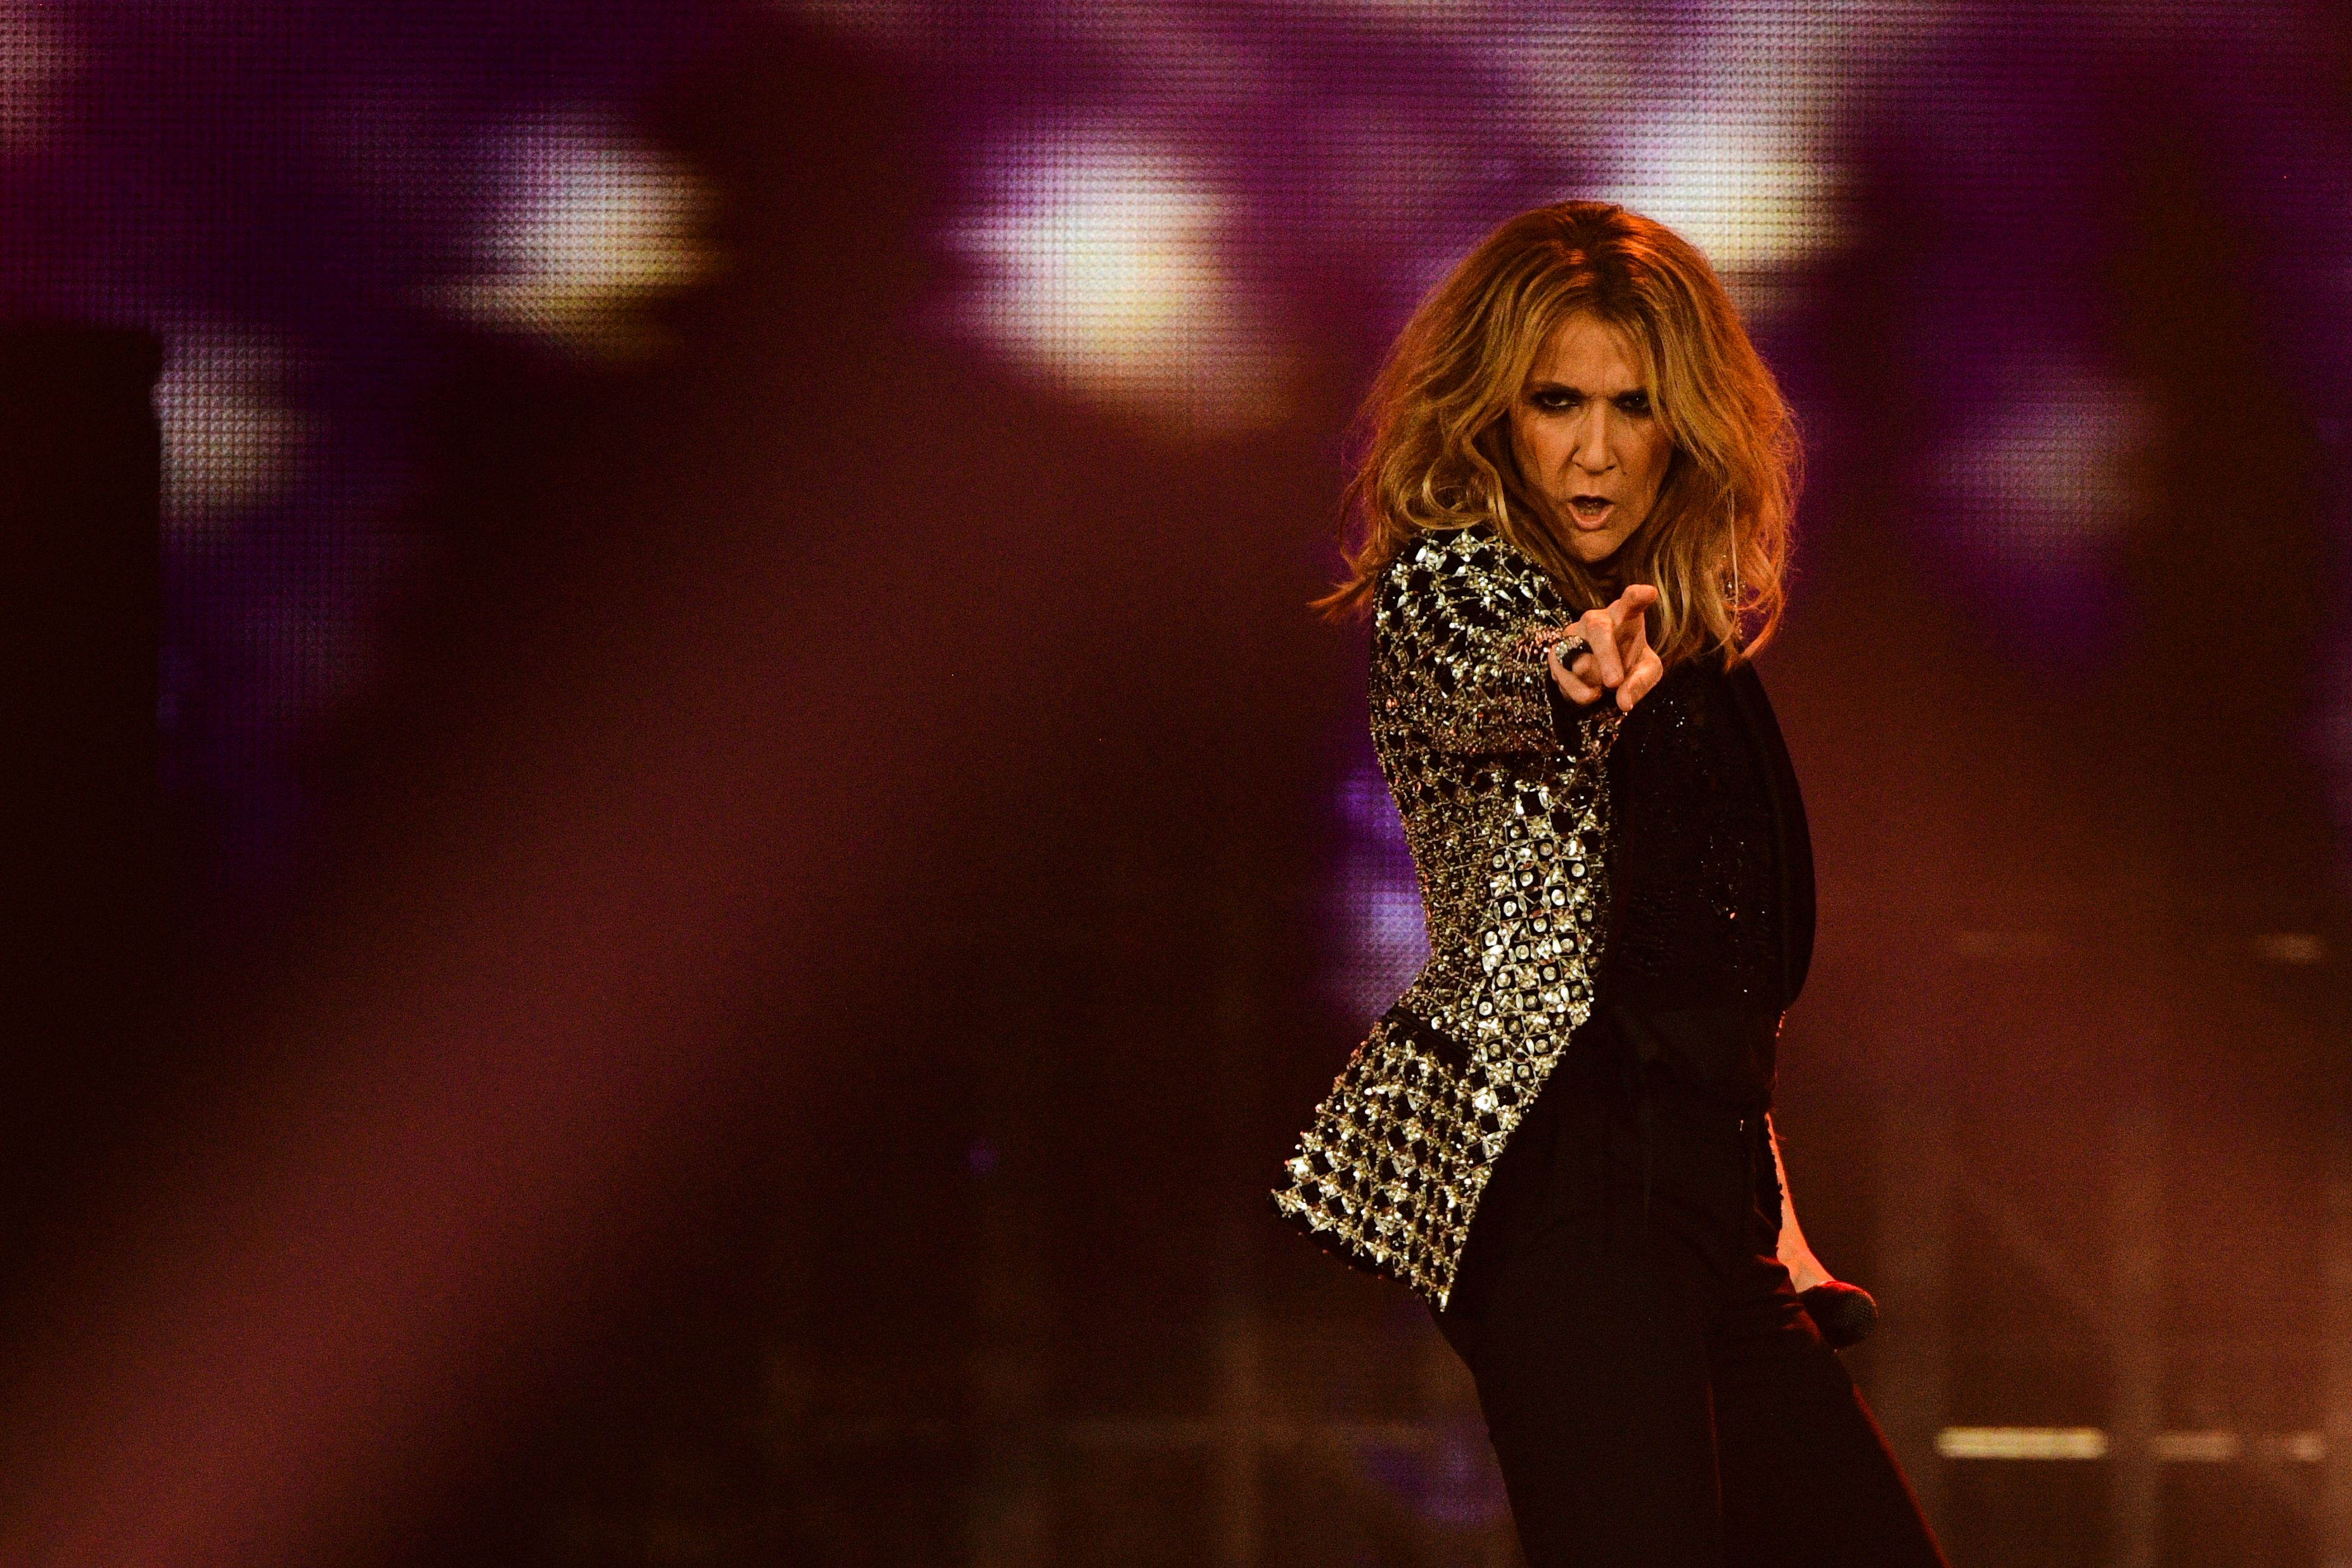 aa9eb4a03846 Celine Dion's gender neutral clothing line is 'satanic,' says priest ·  PinkNews